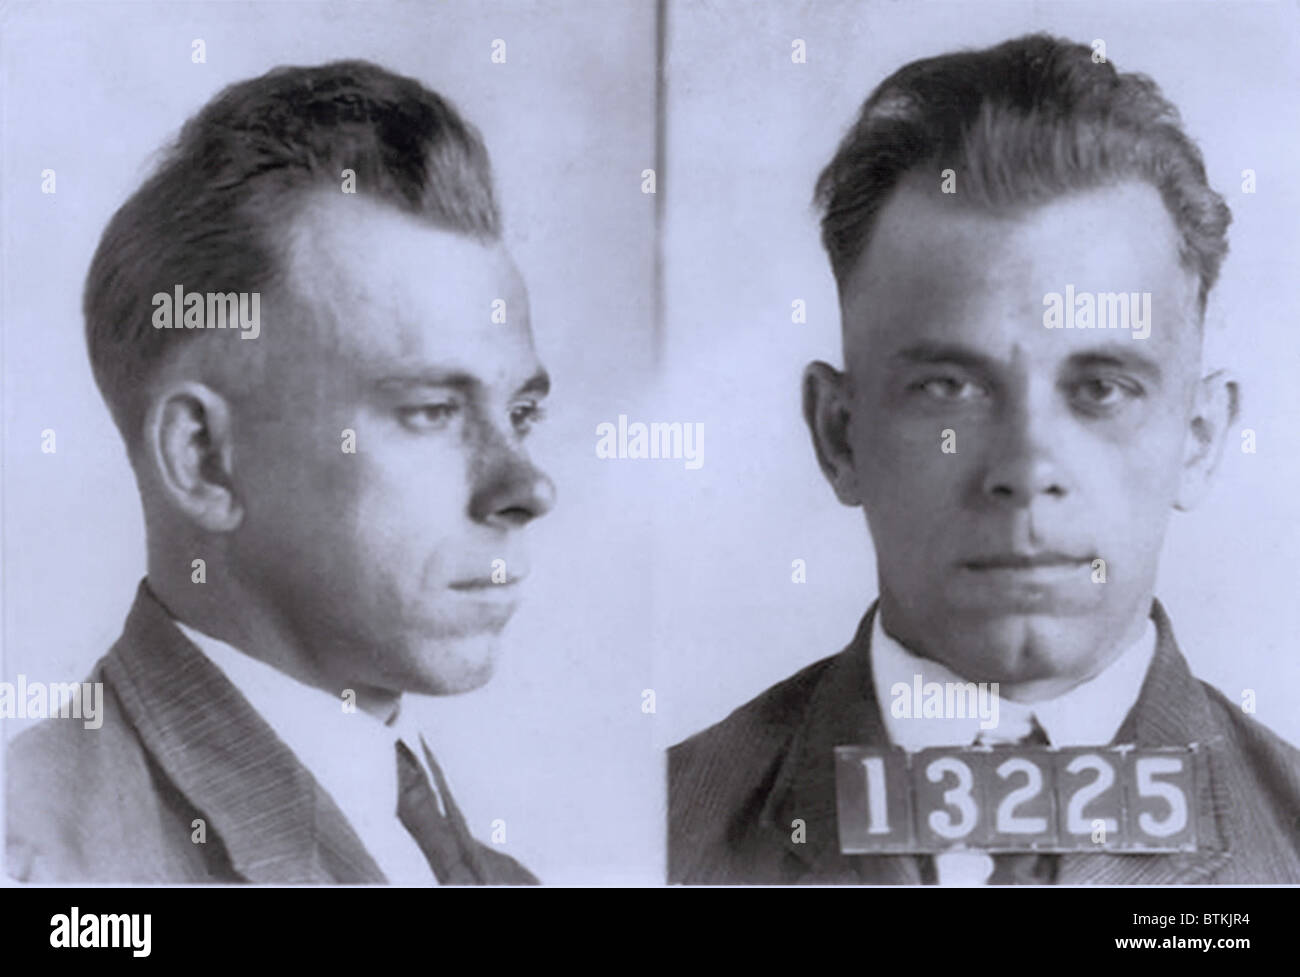 John Dillinger (1903-1934), in mugshot probably made during his eight and half year term in Indiana State Prison. - Stock Image